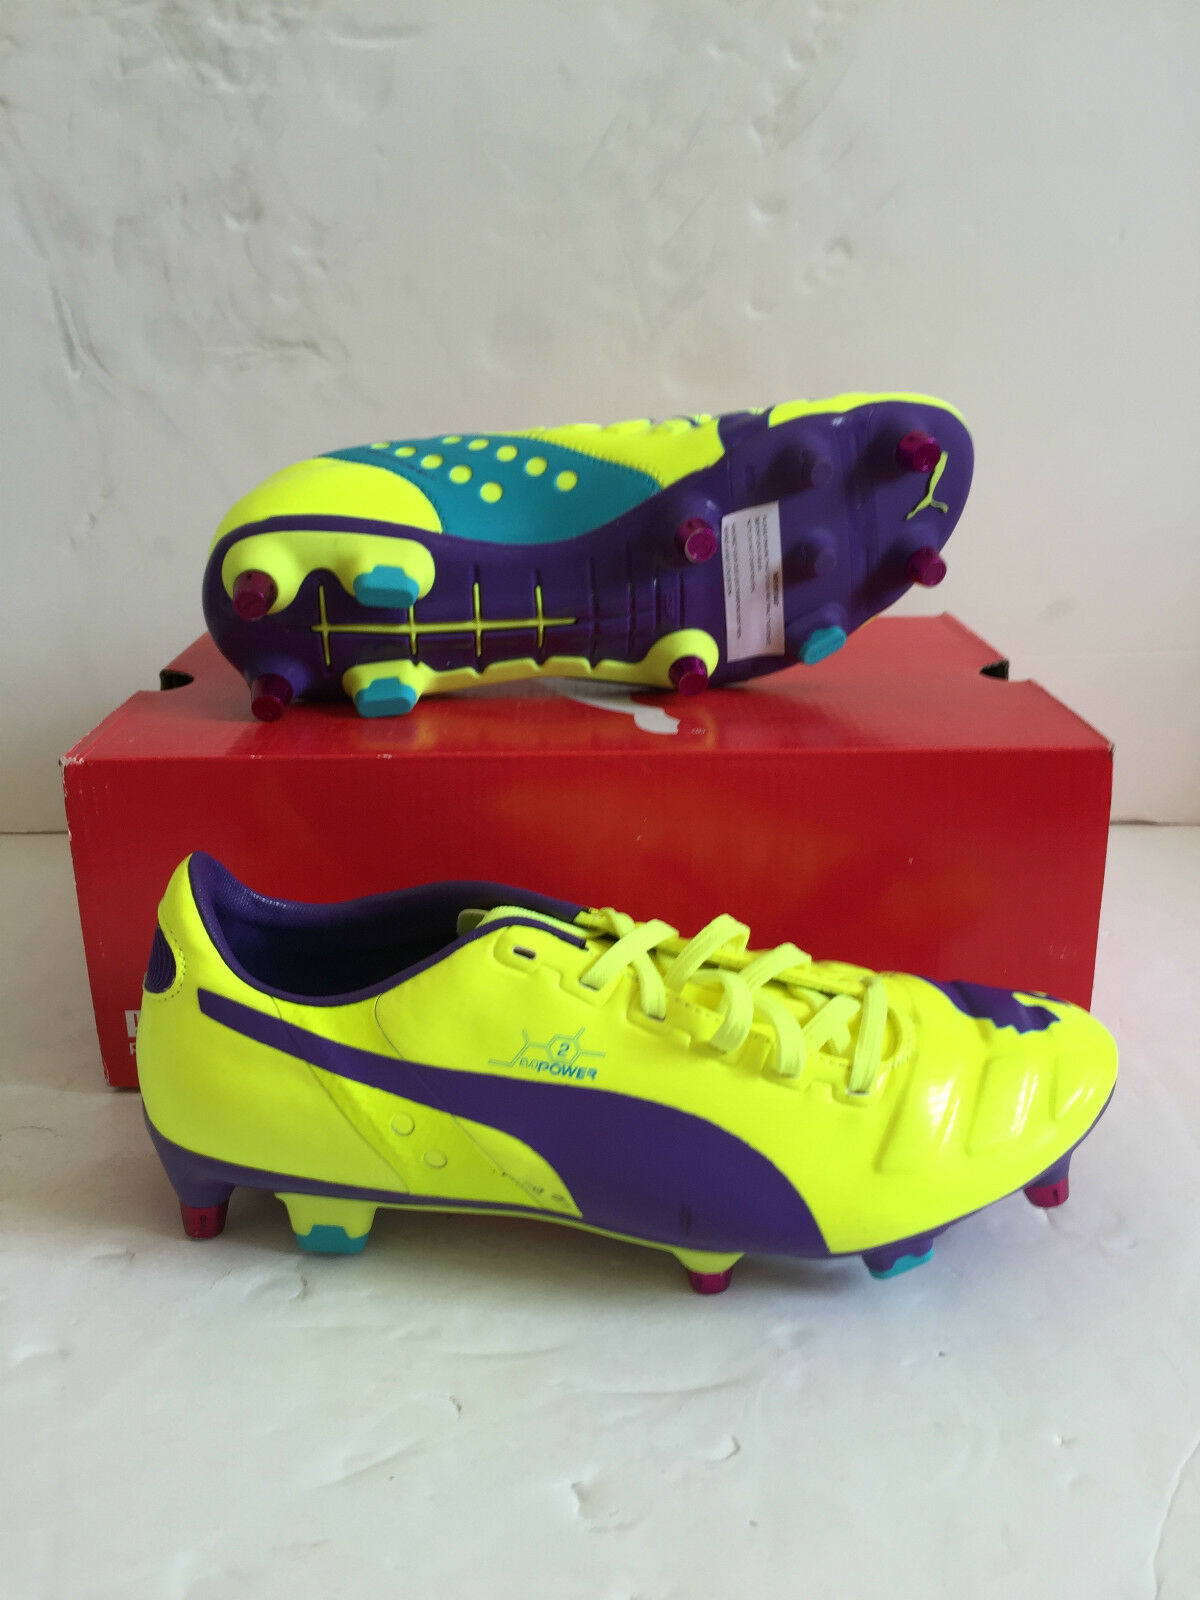 Puma Mens evoPOWER 2 Mixed SG Football Boots - Yellow purple - BNIB